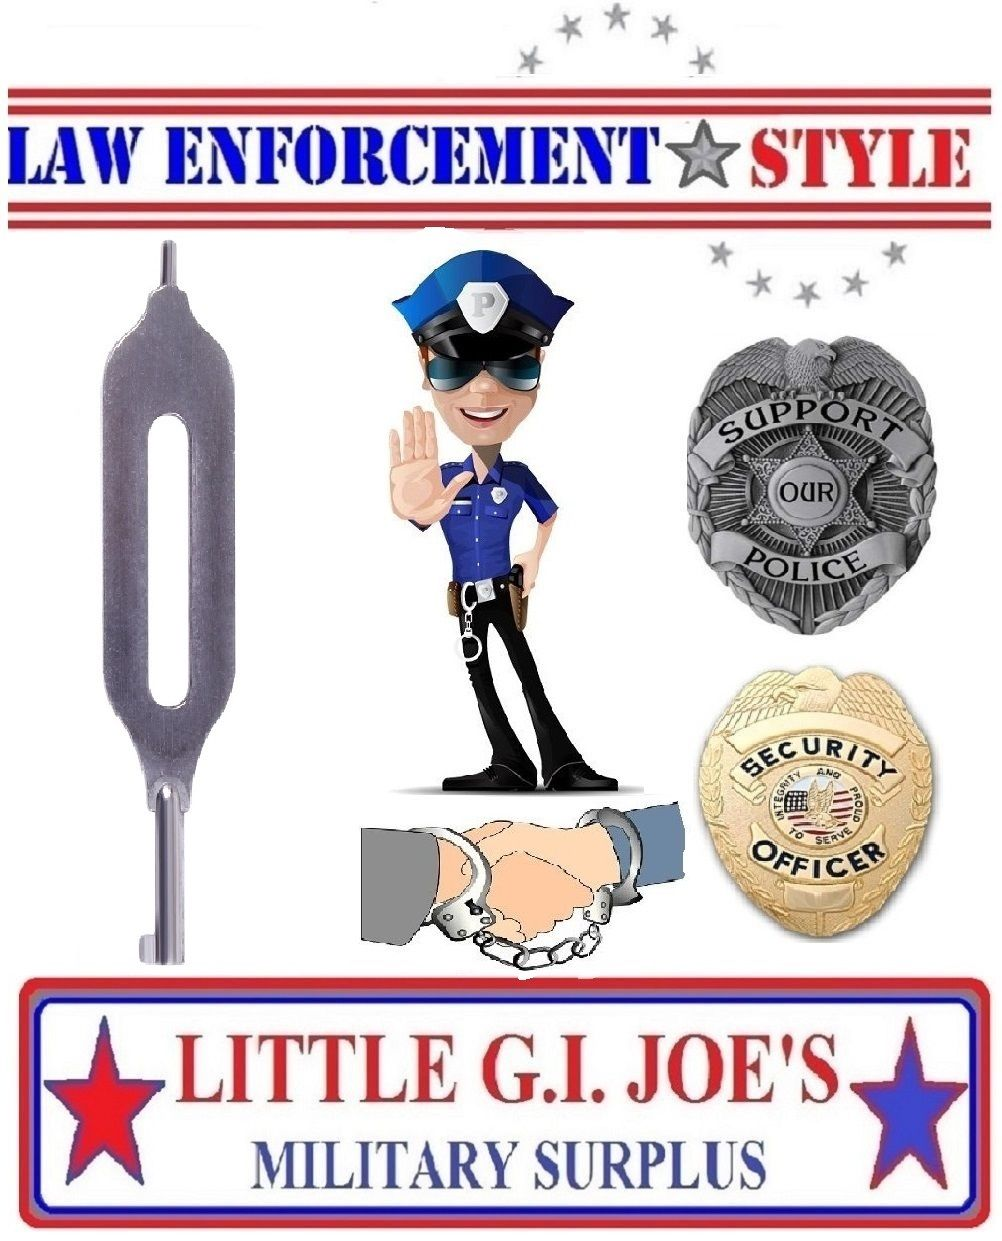 Handcuffs clipart handcuff key. Police security law enforcement